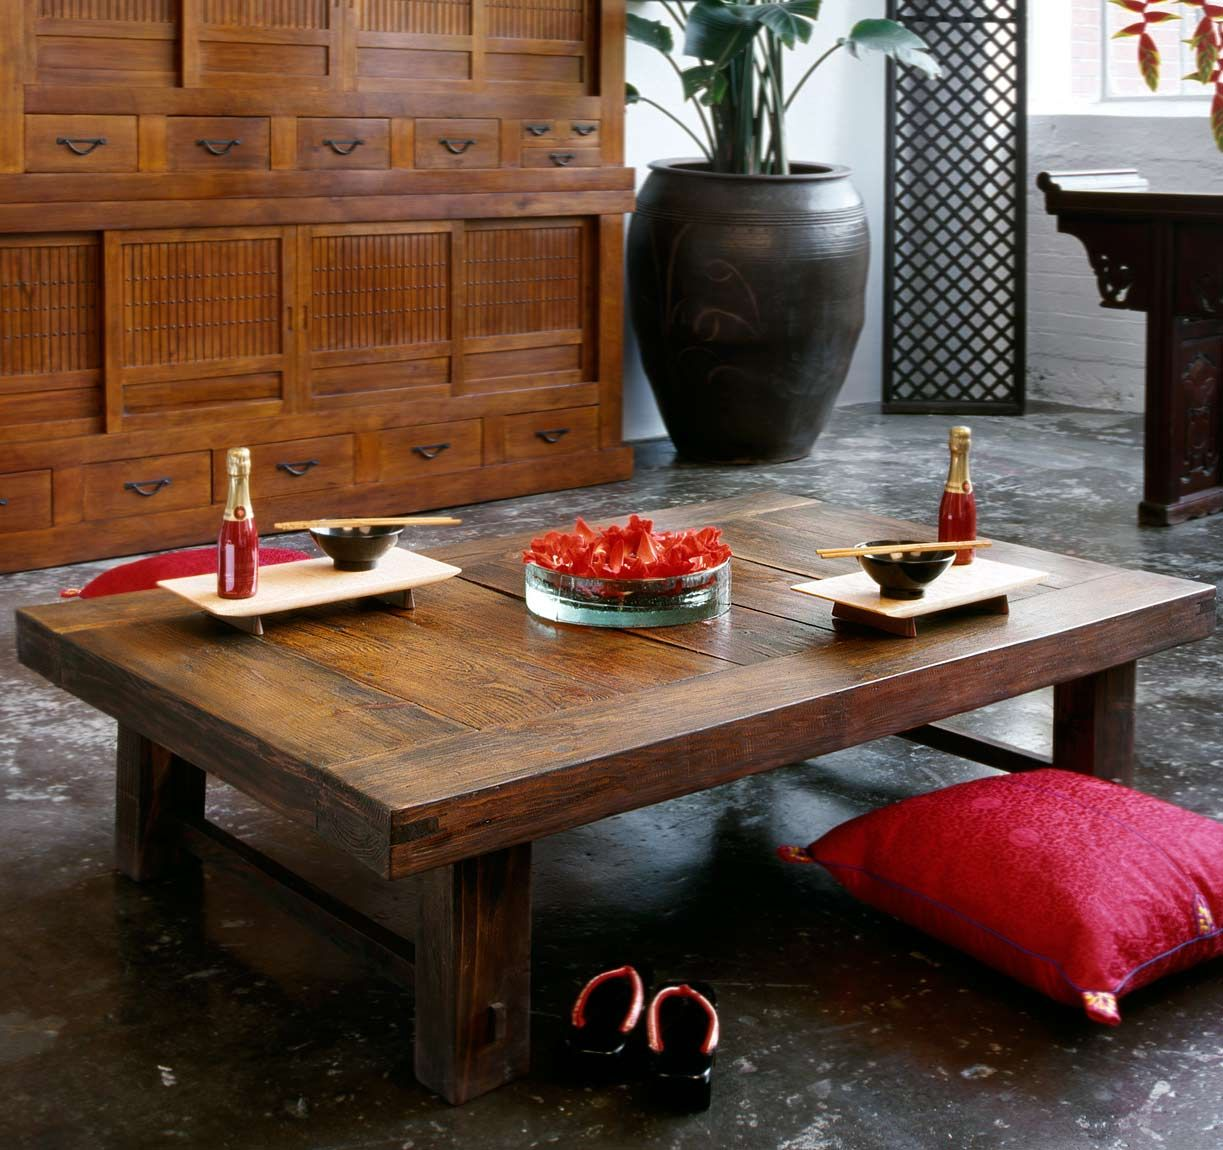 Gorgeous Japanese Themed Coffee Table Green Tea Design Living